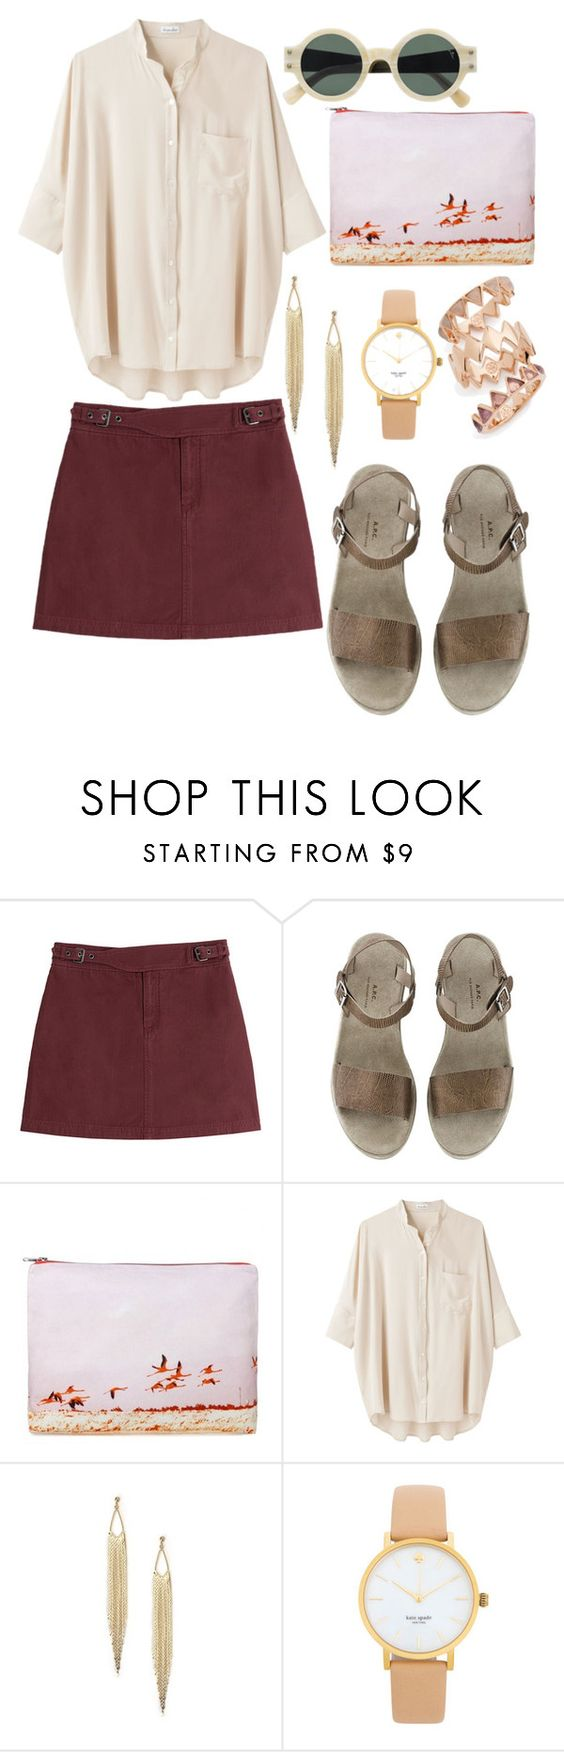 """Untitled #8598"" by beatrizibelo ❤ liked on Polyvore featuring Marc by Marc Jacobs, Dezso by Sara Beltrán, Steven Alan, Kate Spade and Tory Burch"